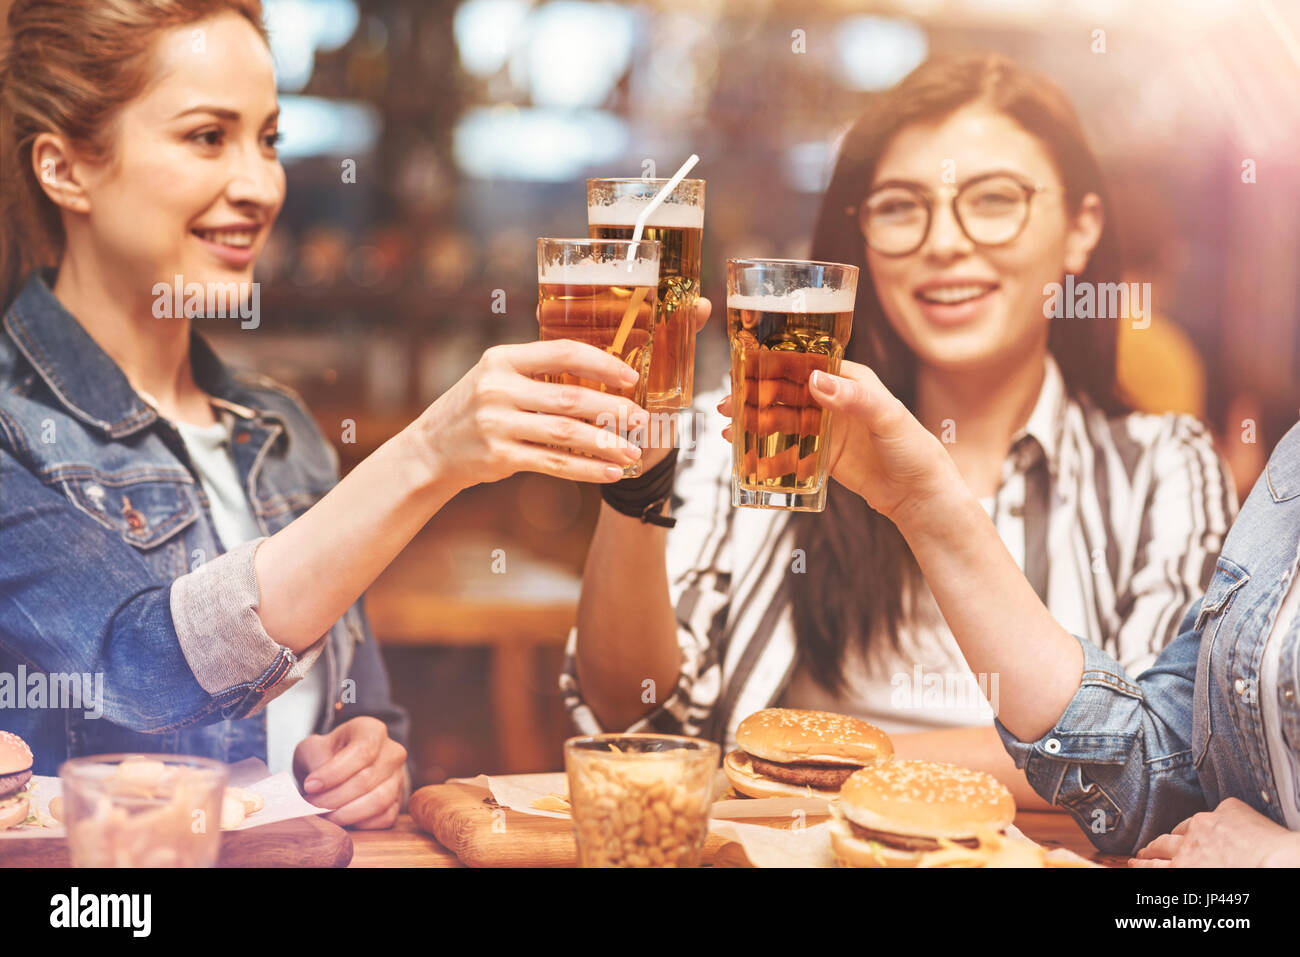 Happy girls celebrating their vacation - Stock Image